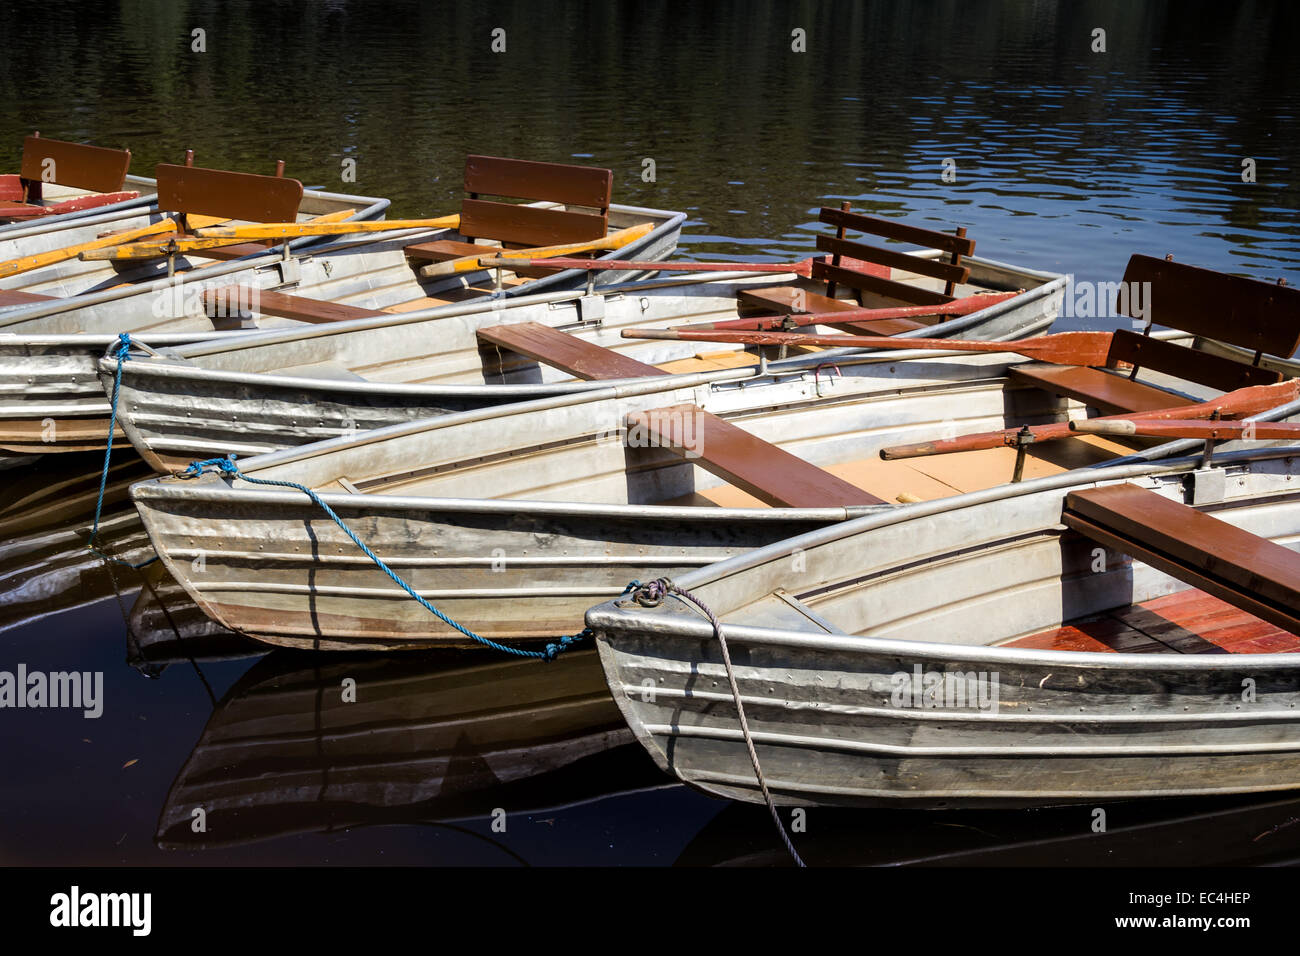 Empty rowboats at a lake in a row with copy space - Stock Image